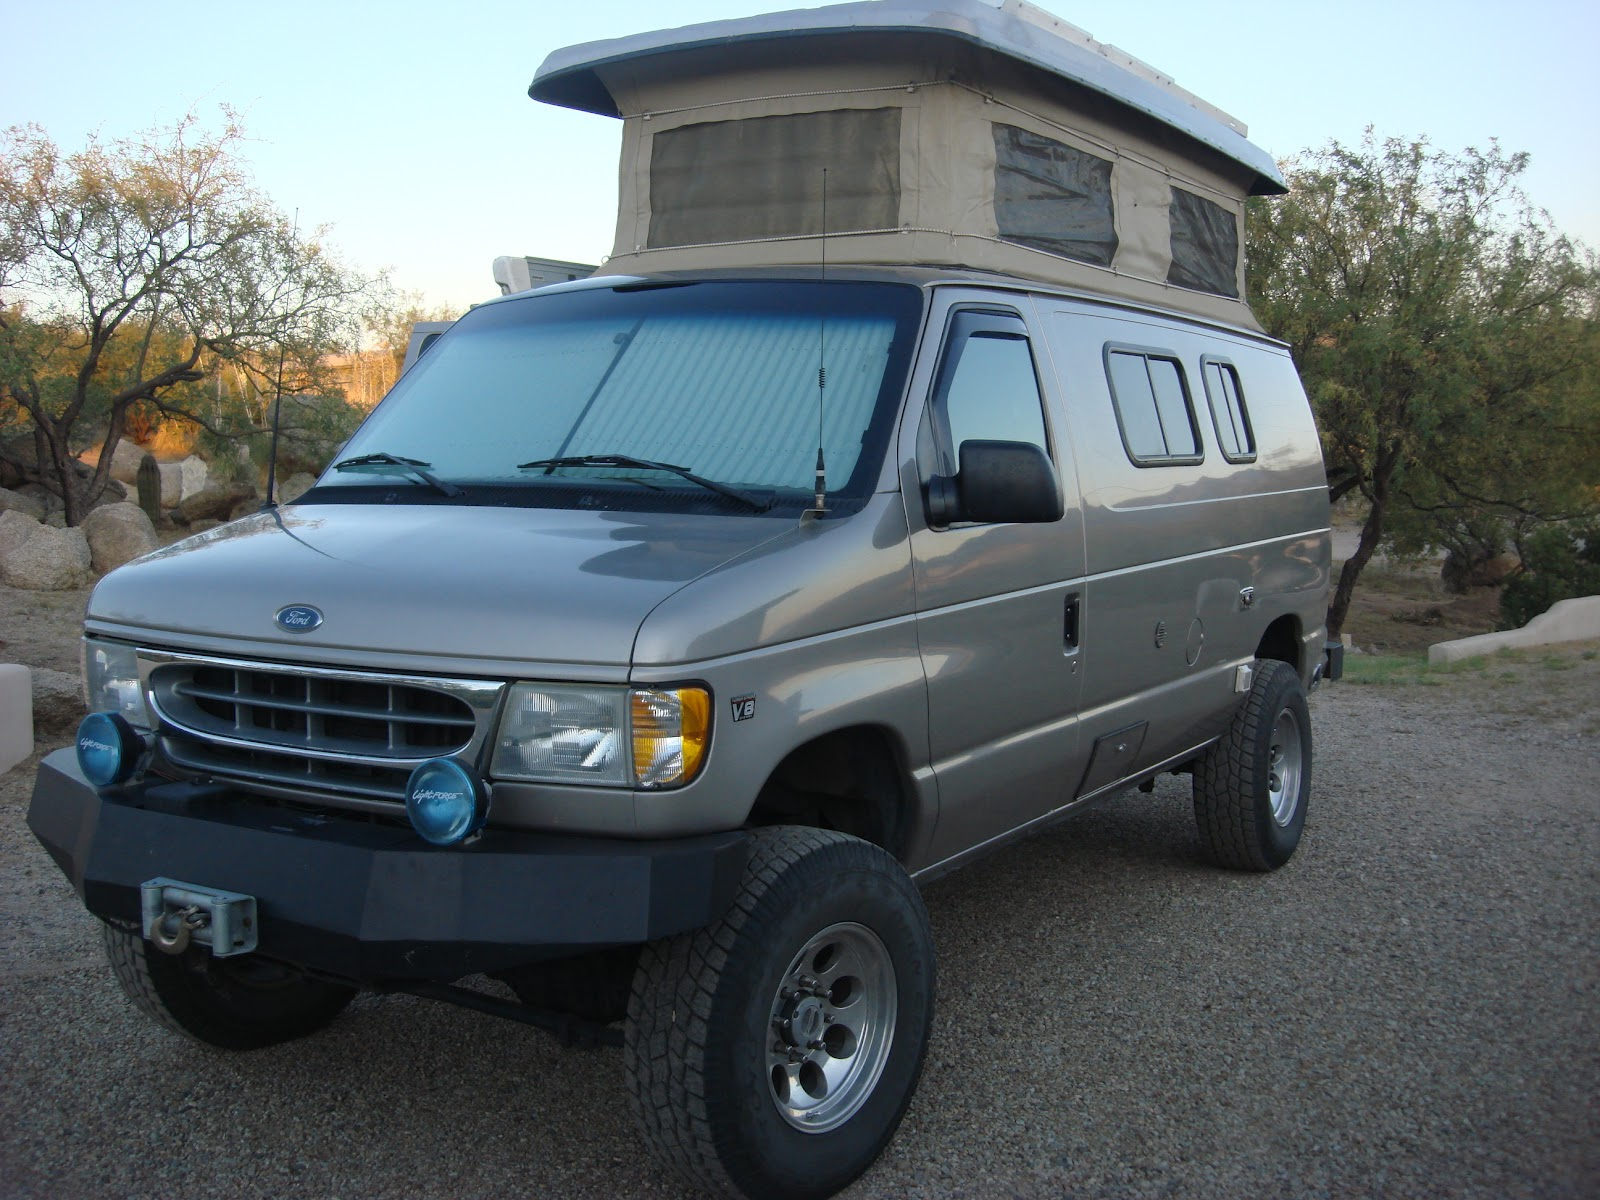 Sportsmobile 4x4 Van submited images.